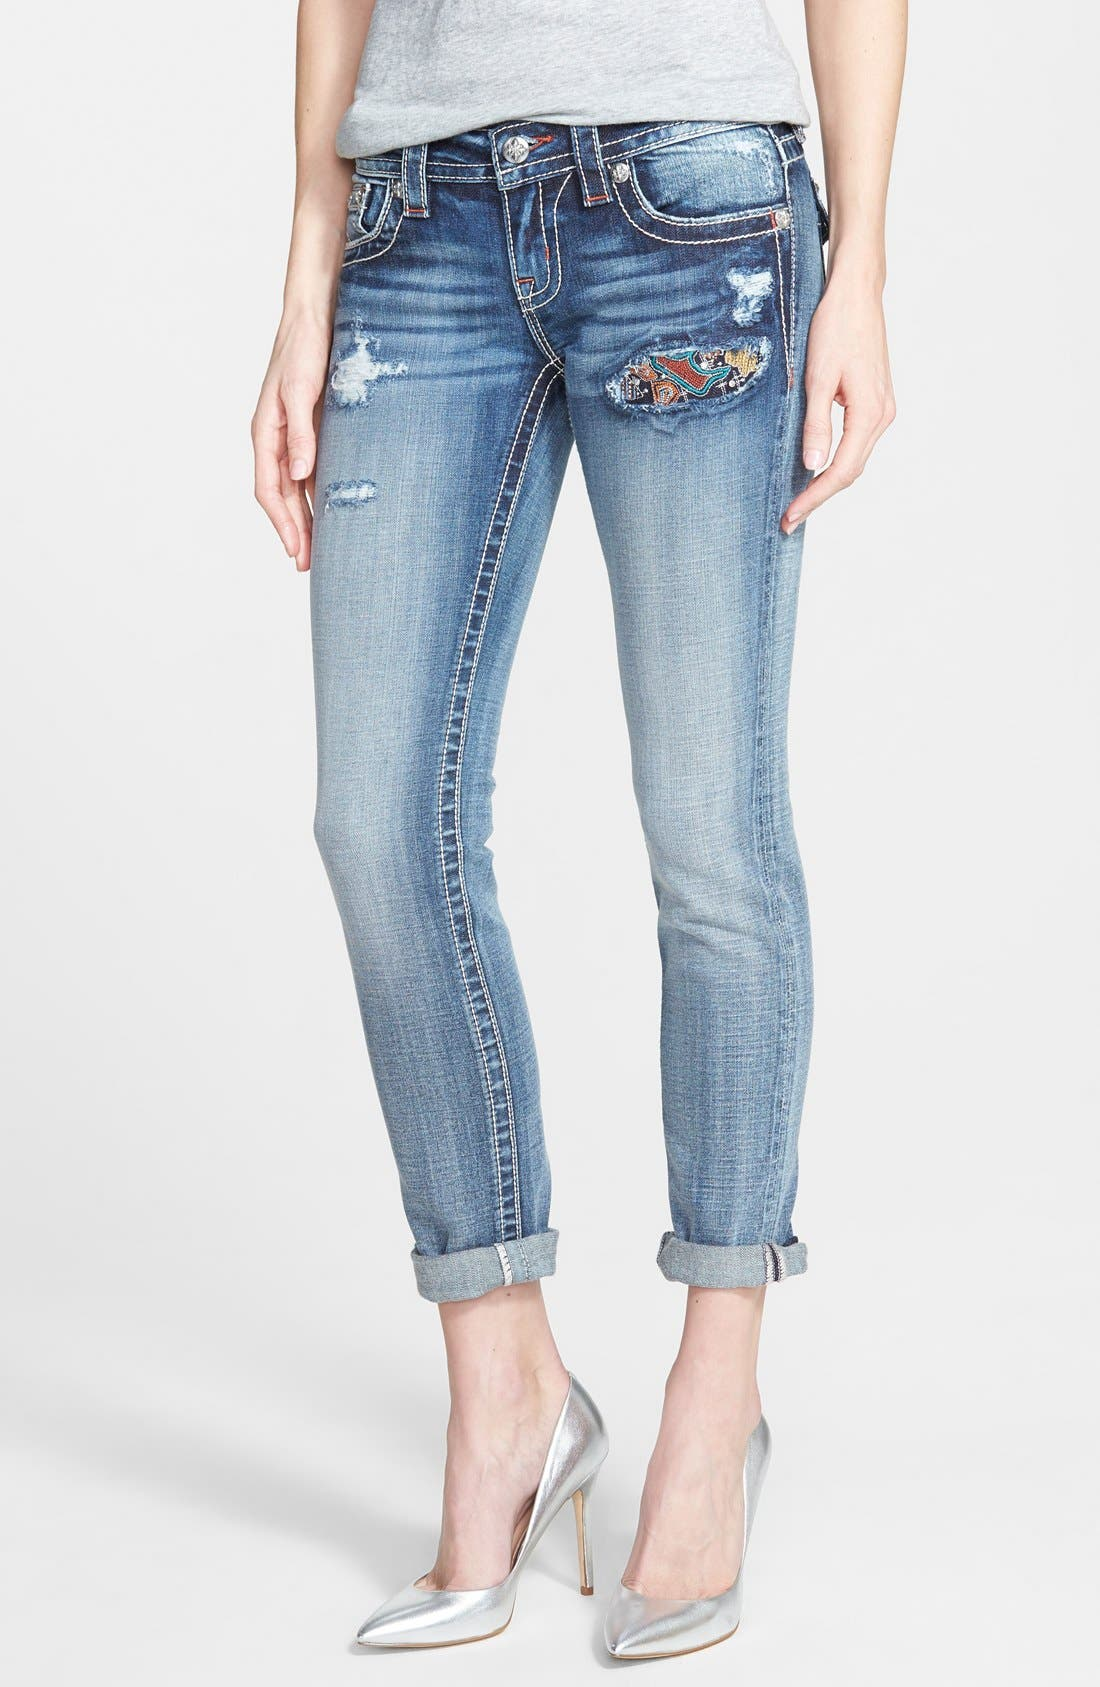 Alternate Image 1 Selected - Miss Me Distressed Skinny Ankle Jeans with Roll Hems (Medium Blue)